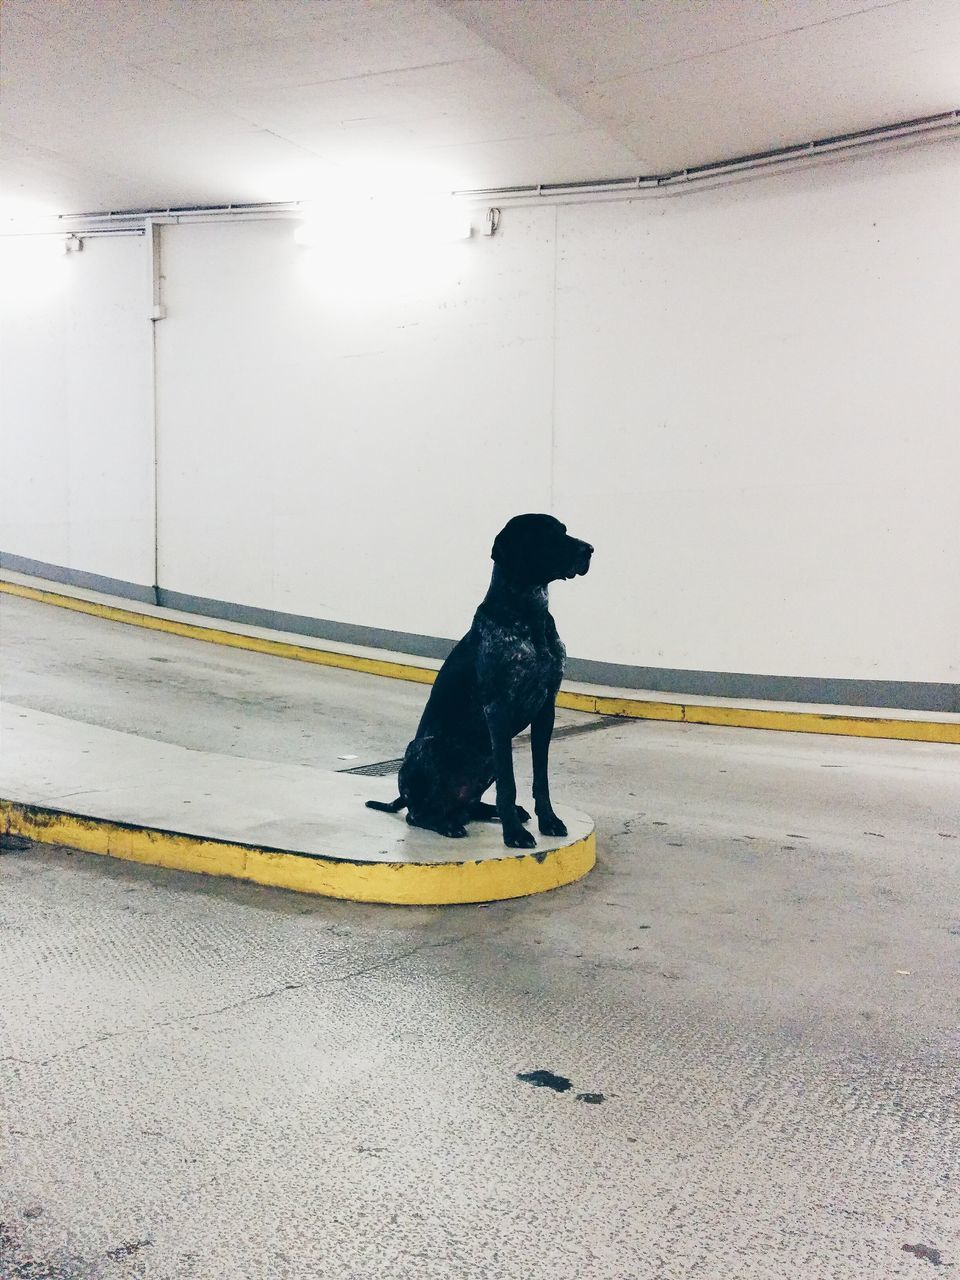 Dog In Parking Lot Waiting